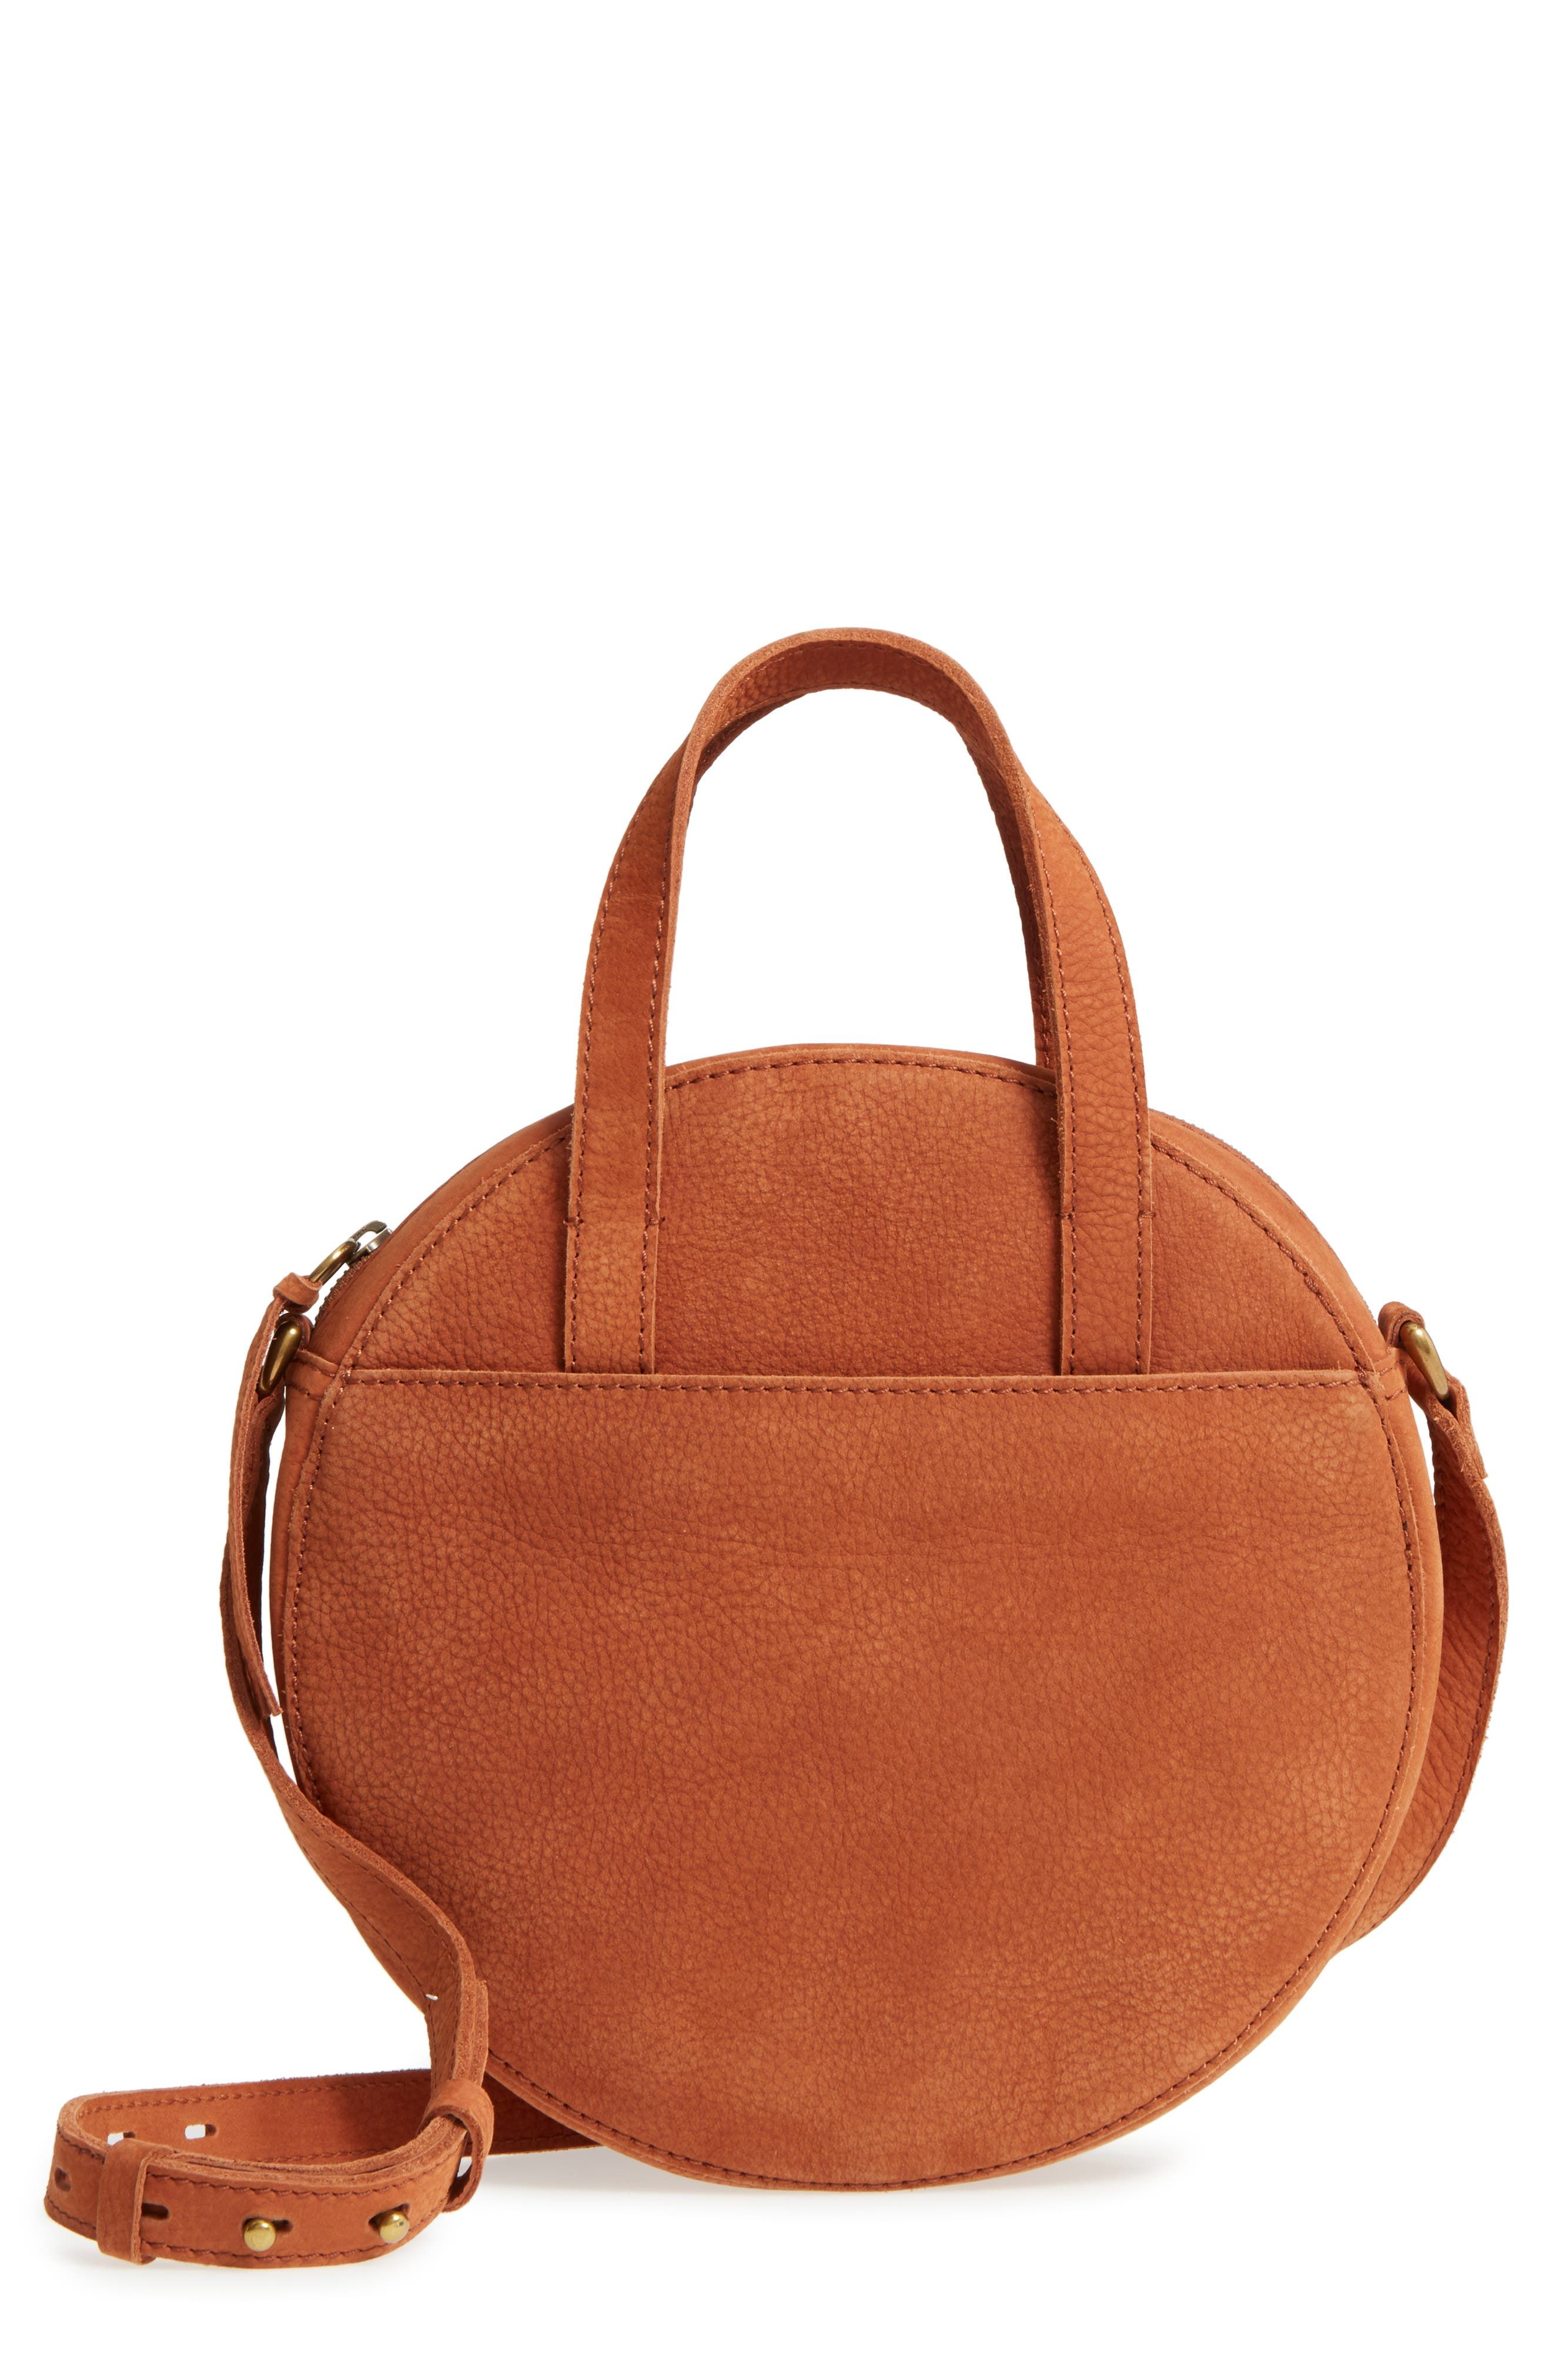 Madewell Juno Circle Leather Shoulder Bag